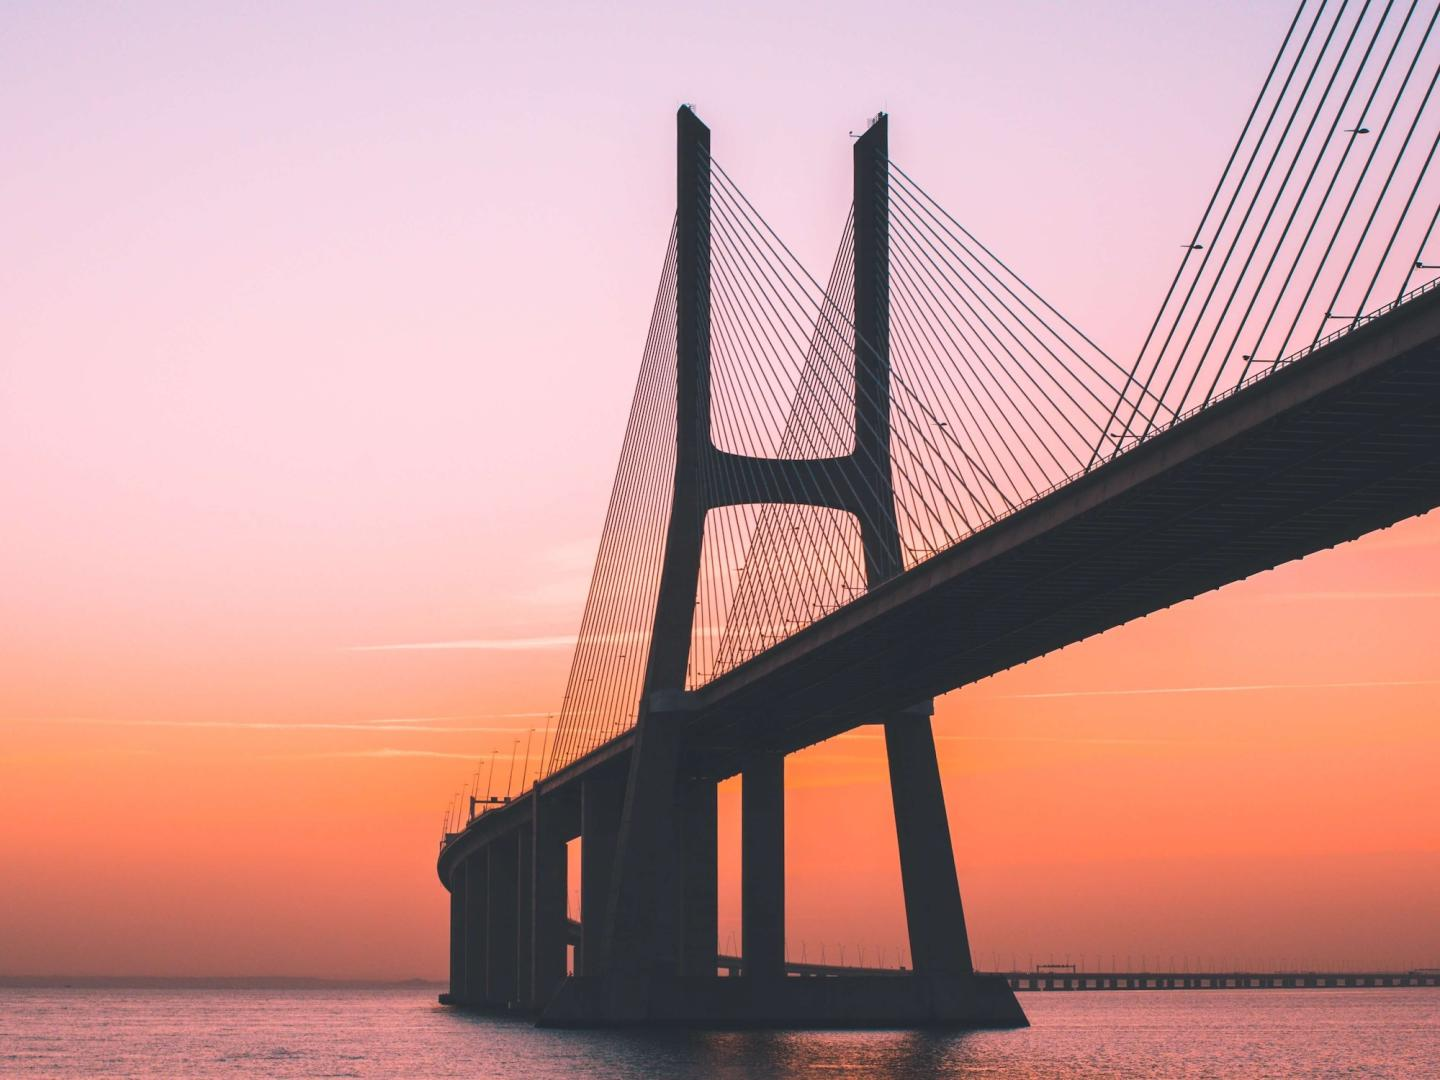 Image of a bridge over water at sunset